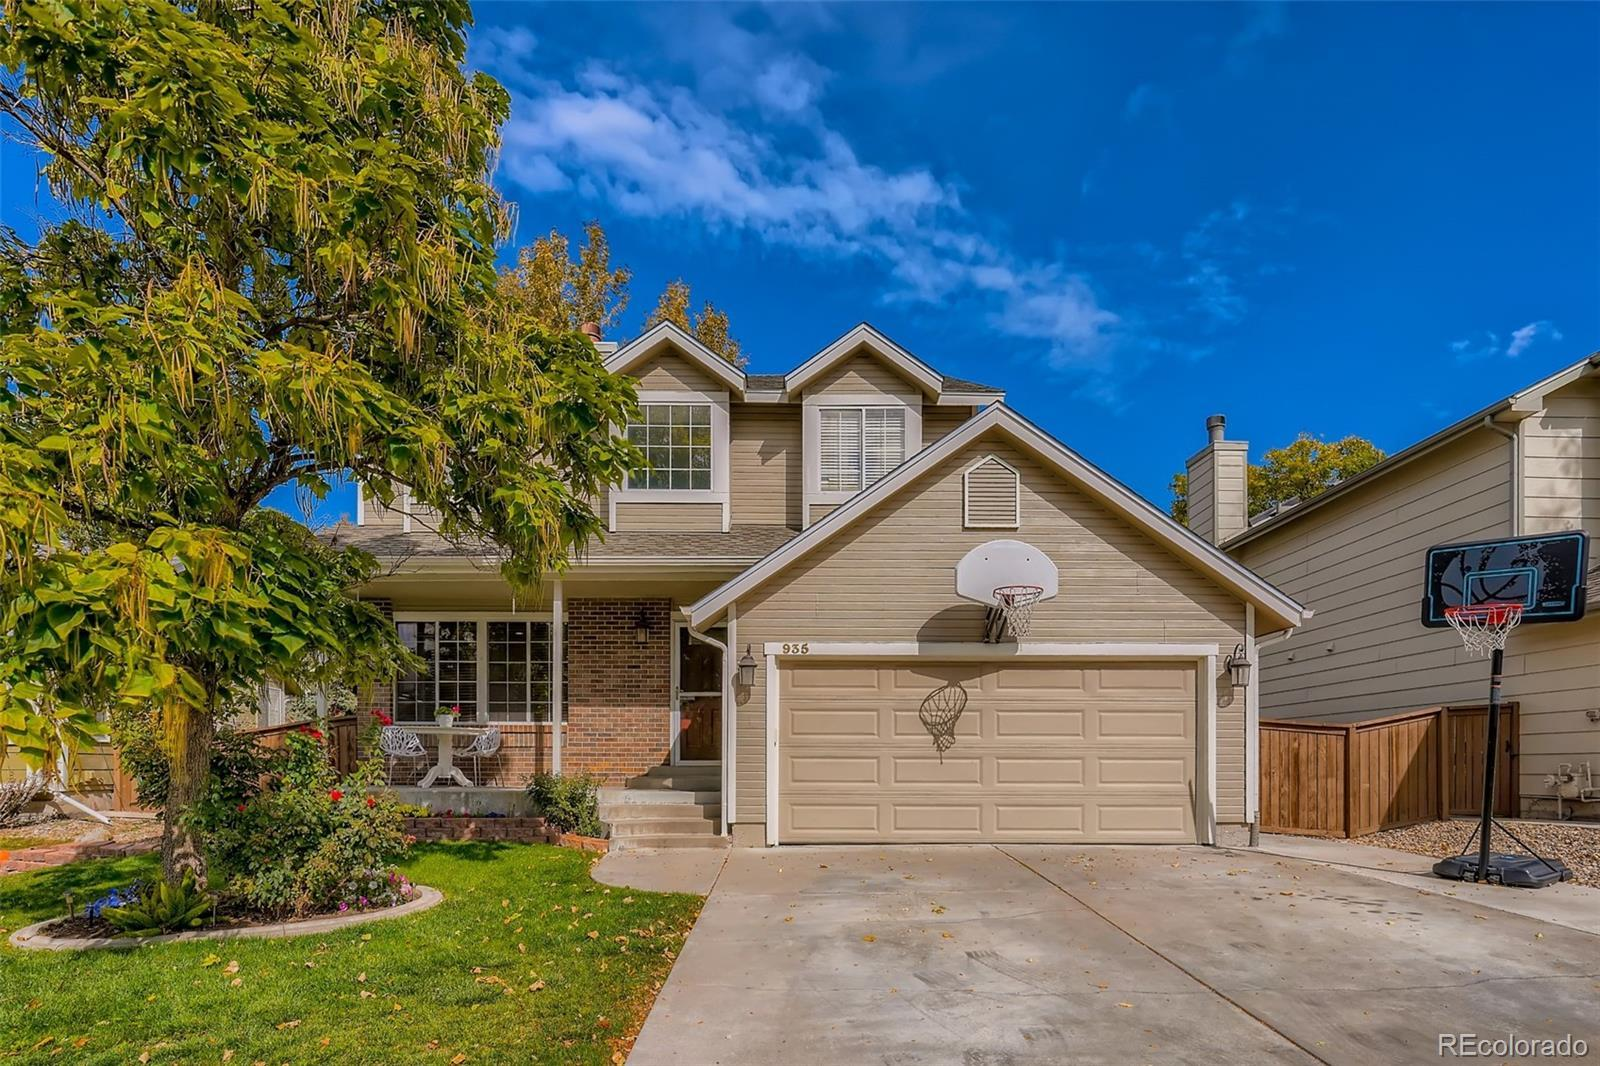 935 Brittany Way, Highlands Ranch, CO 80126 - #: 3539873